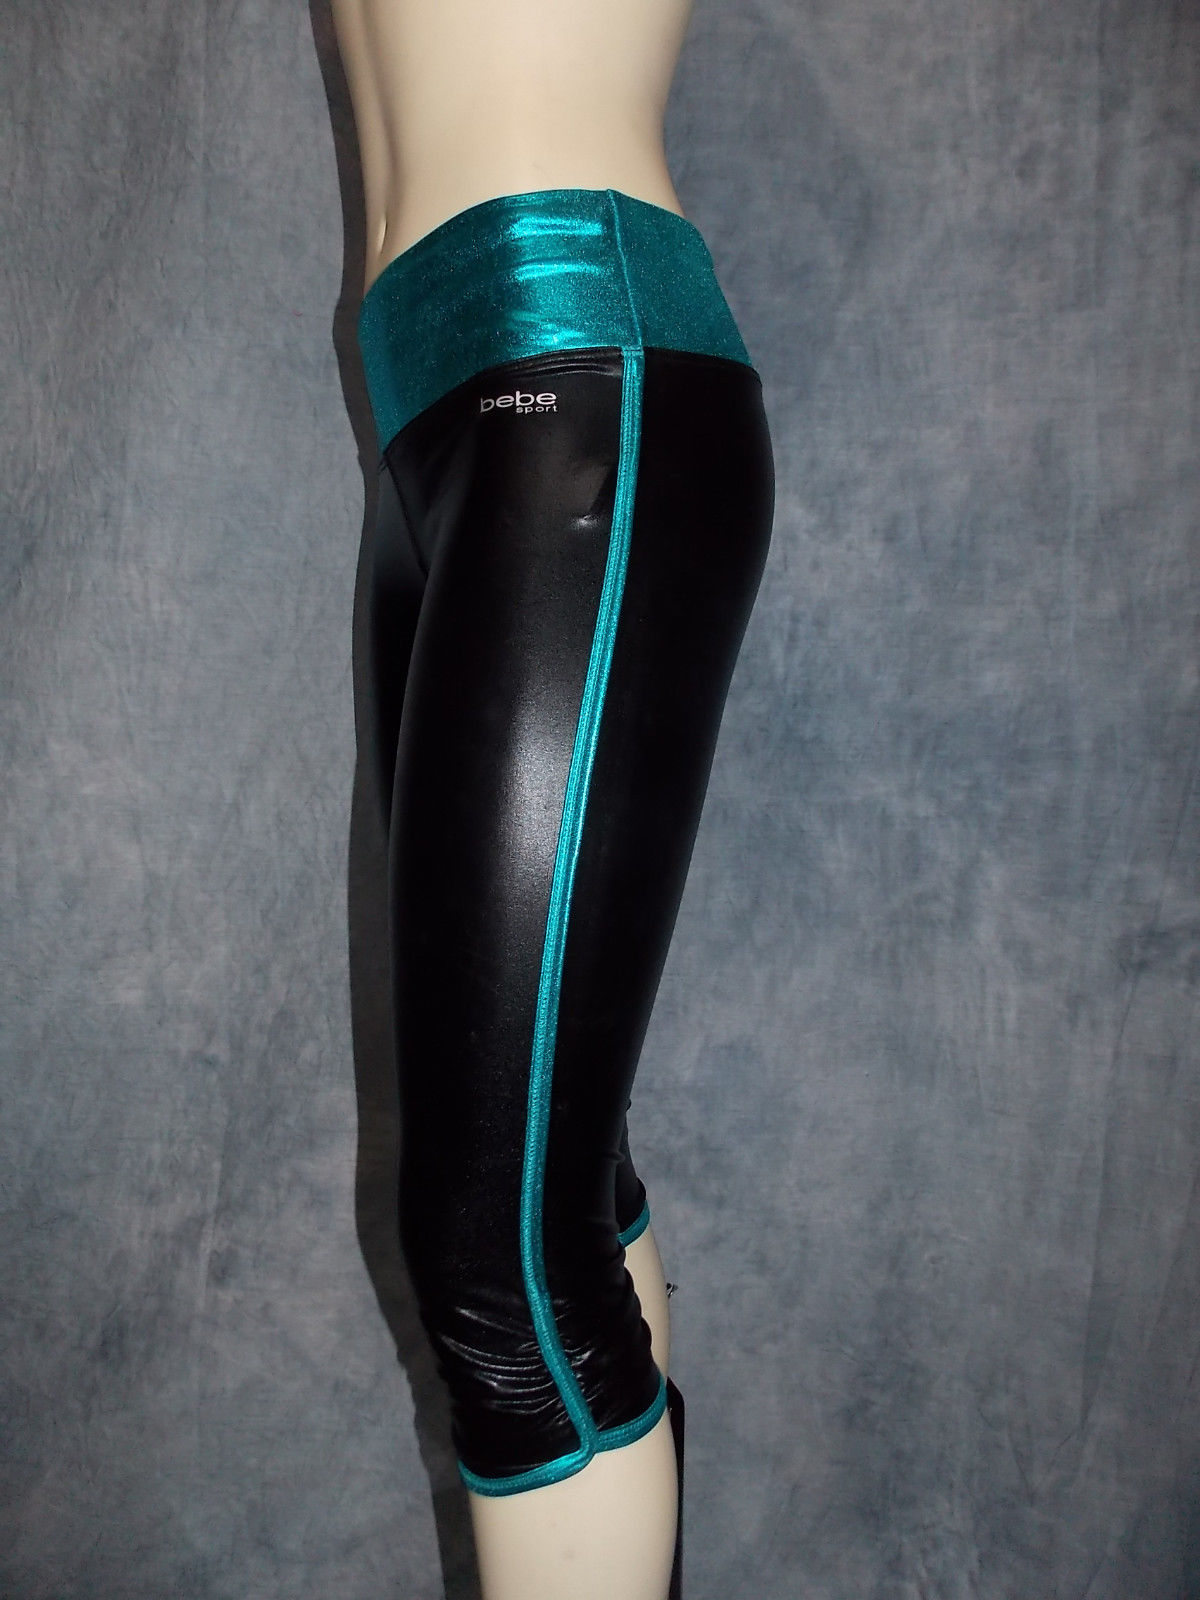 bebe Sport Tights Side View